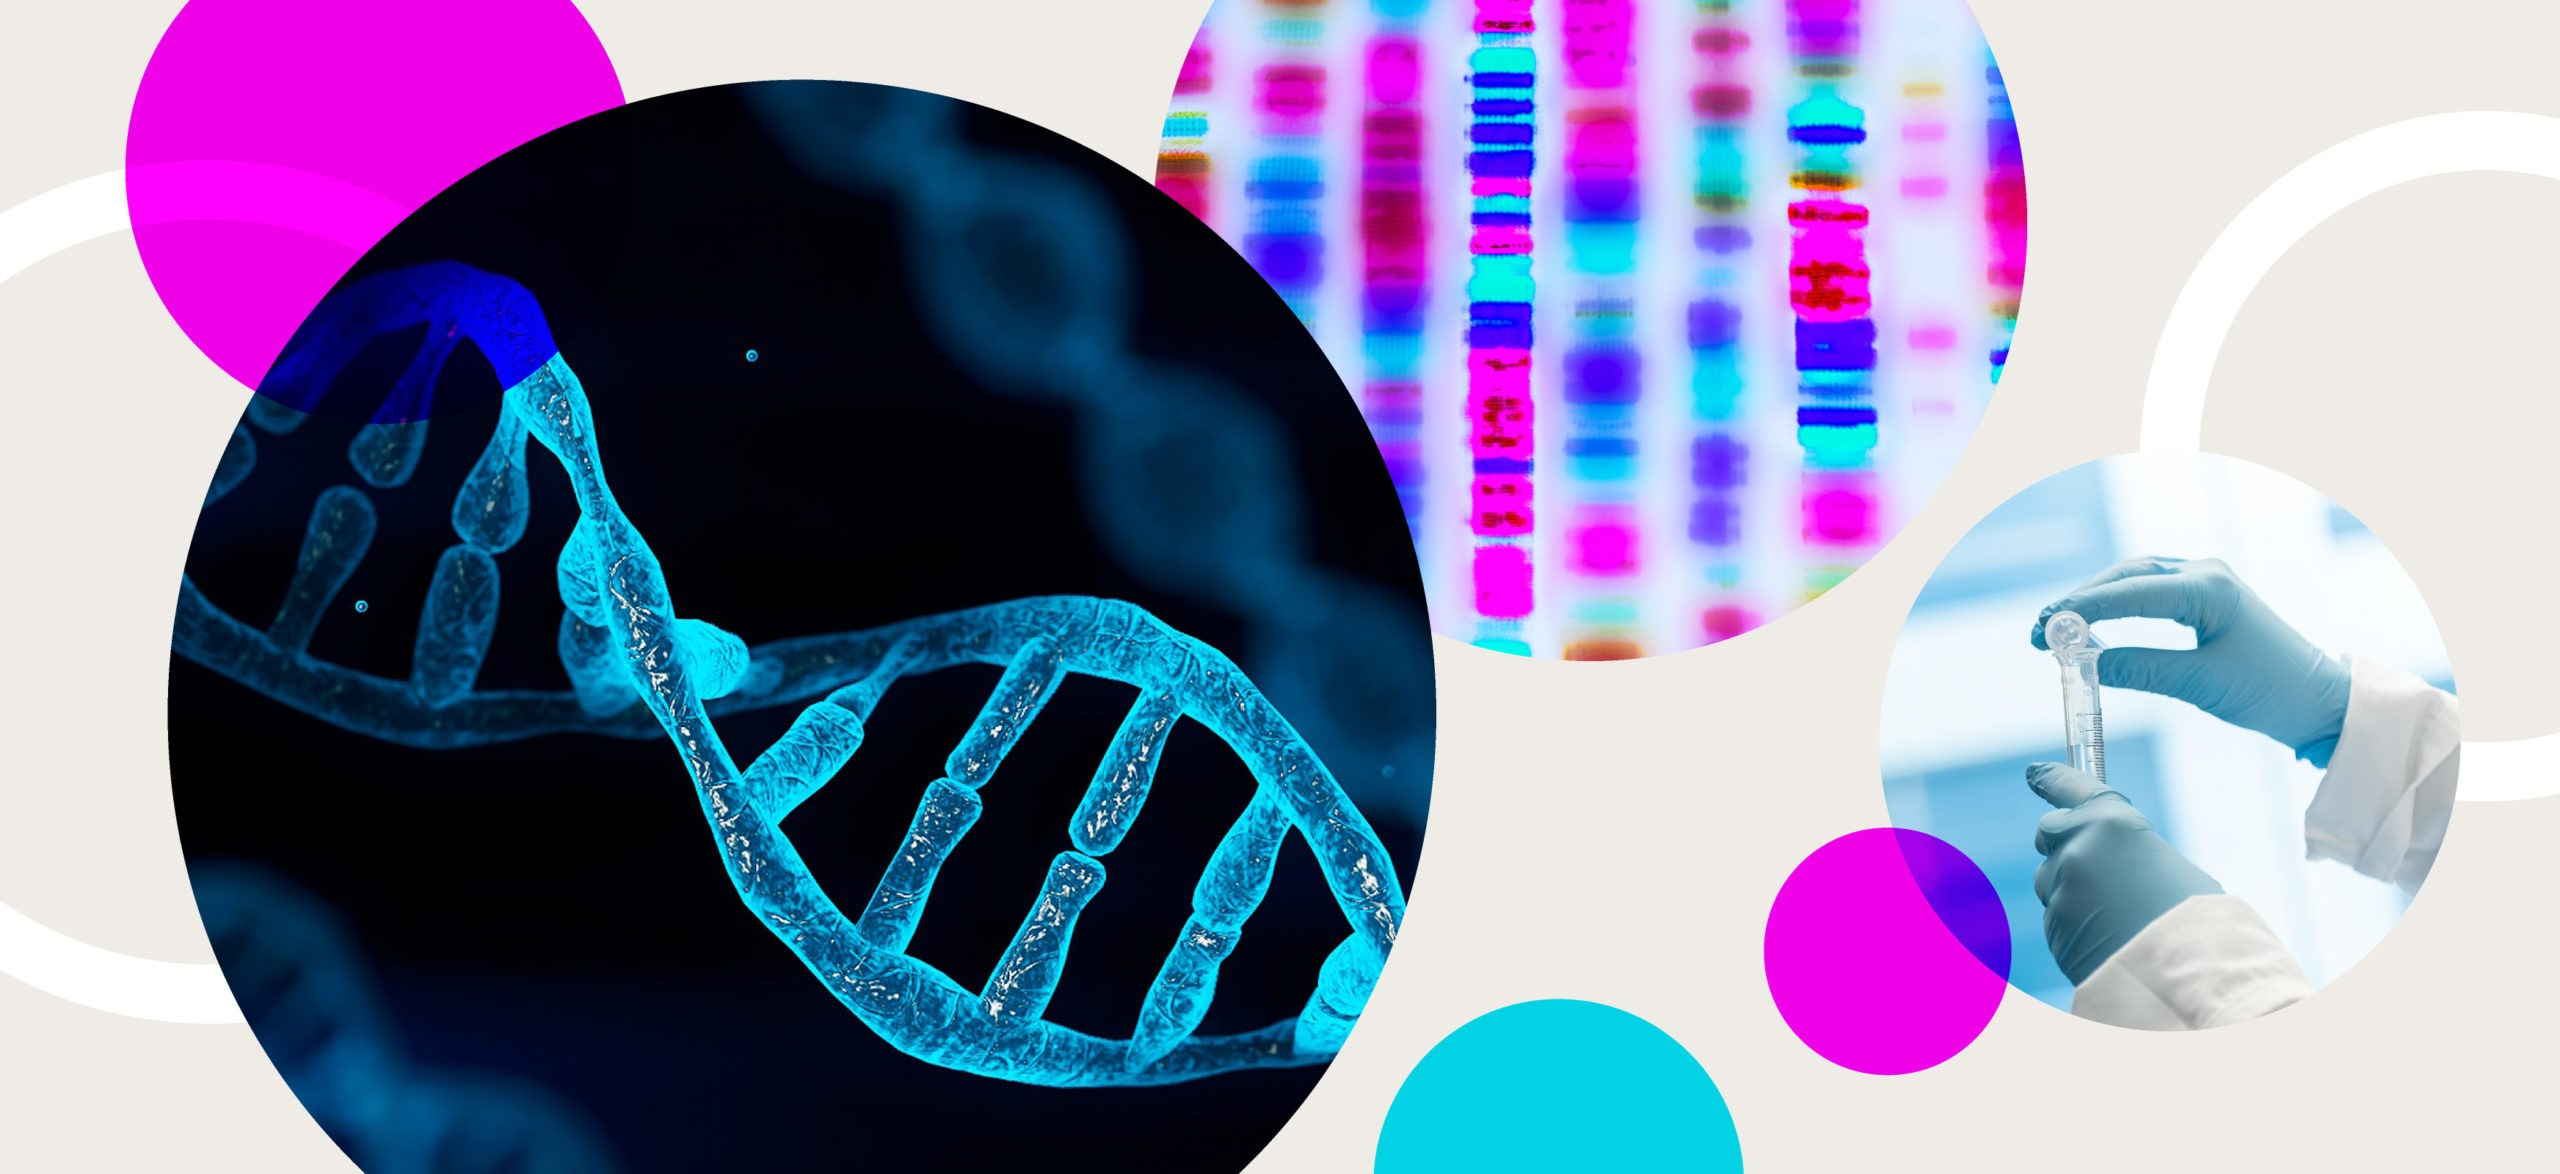 A collage showing a scientific illustration of DNA, the results of genome sequencing and a person working in a genomics lab